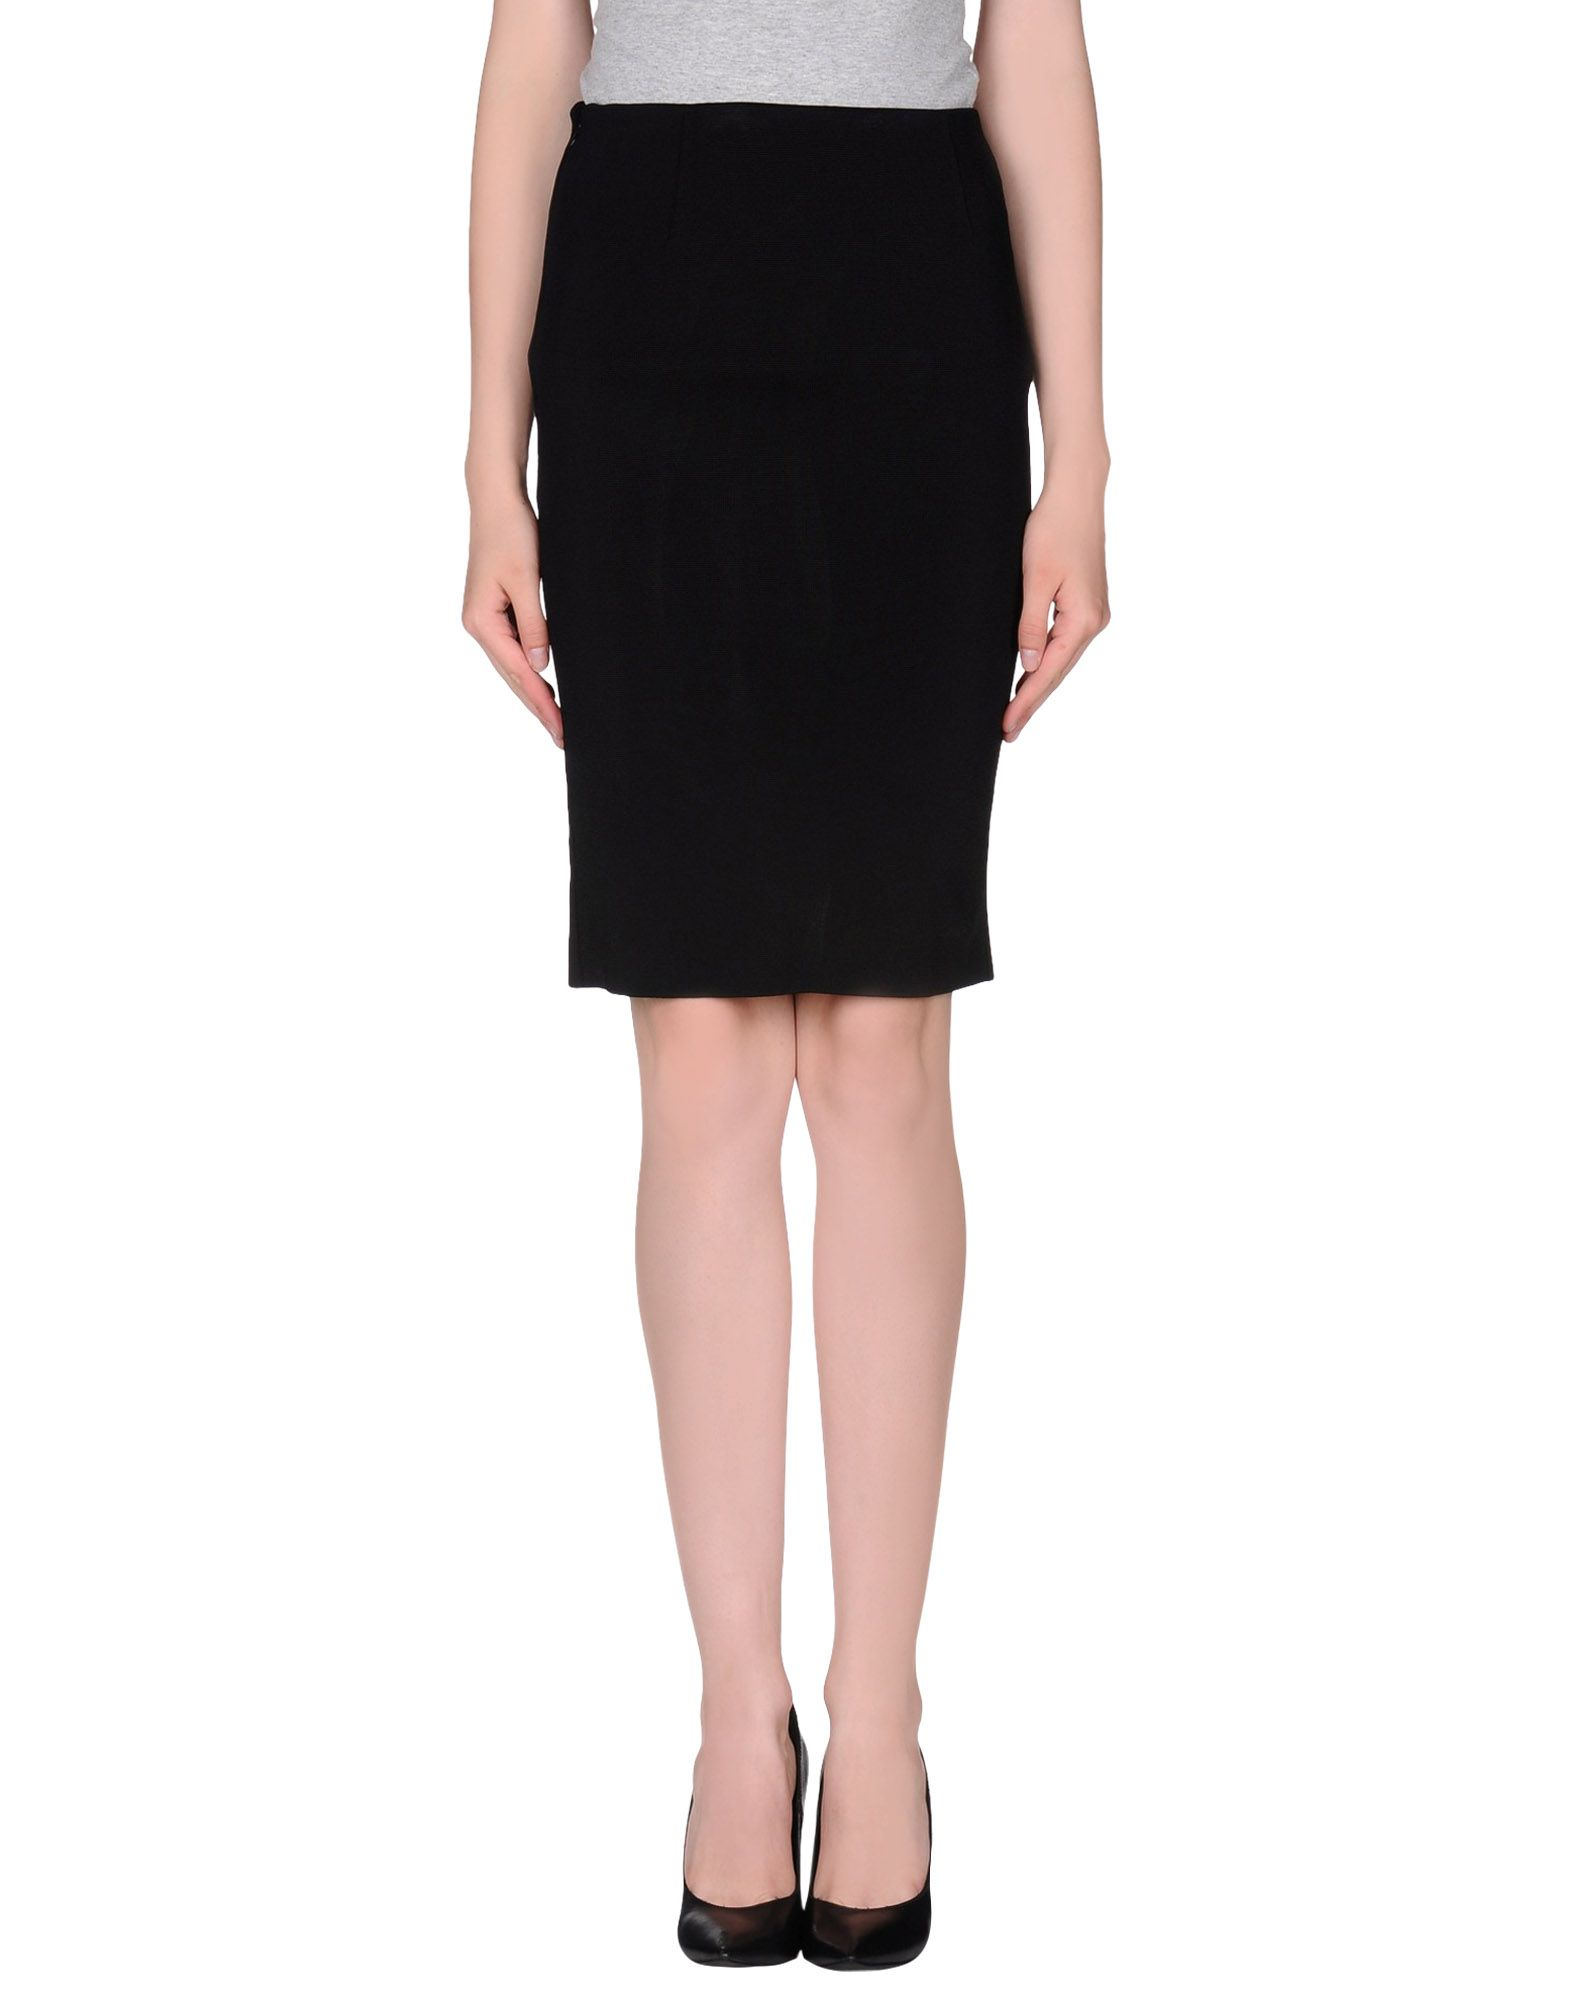 Cheap dress and skirts - Womens Skirts Womens Knee Length Skirts Womens Valentino Skirts